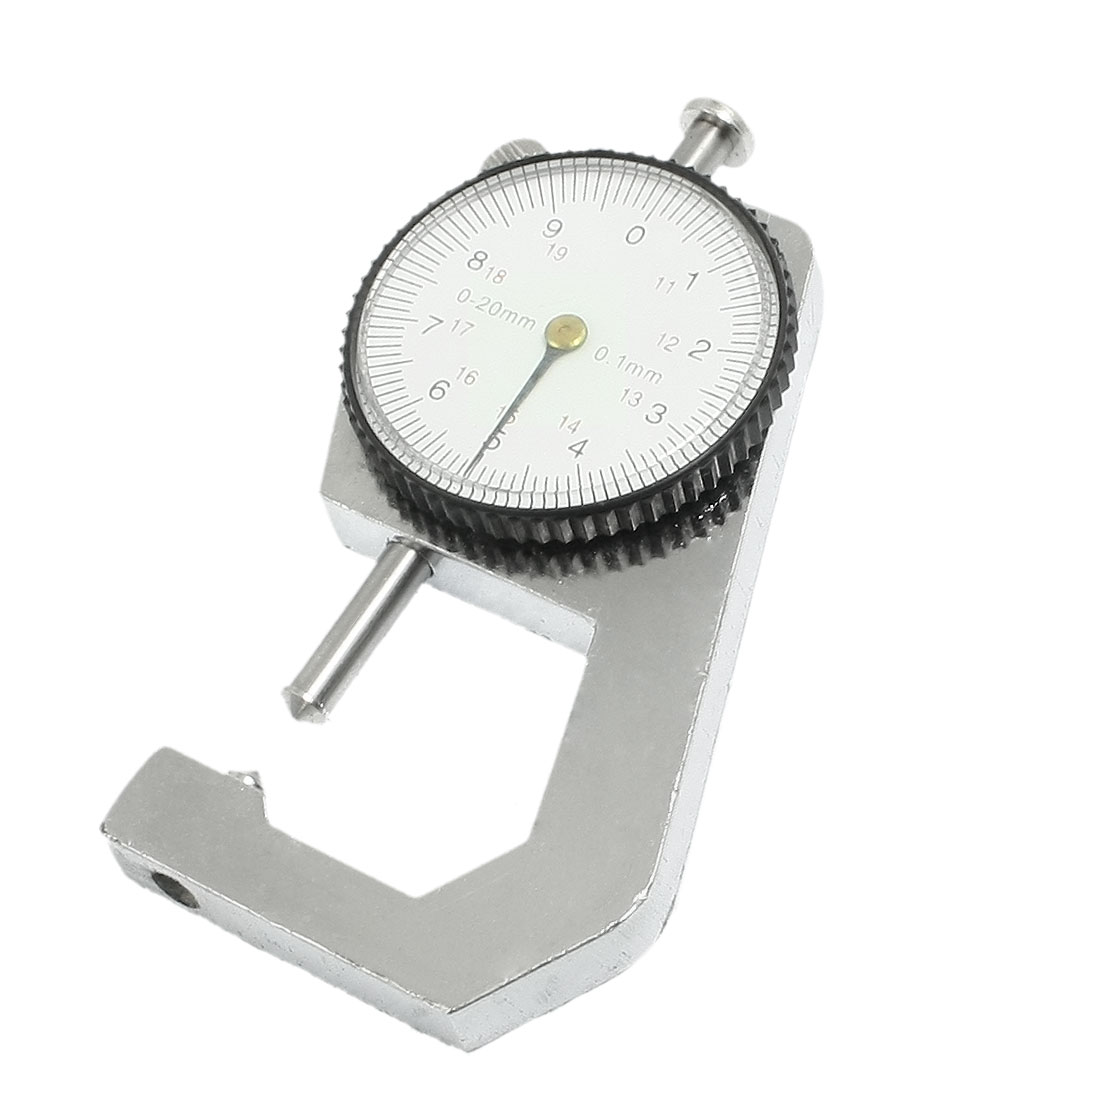 0.1mm Dial Indicator Thickness Gauge Scale Meter Tool 0-20mm Measurement